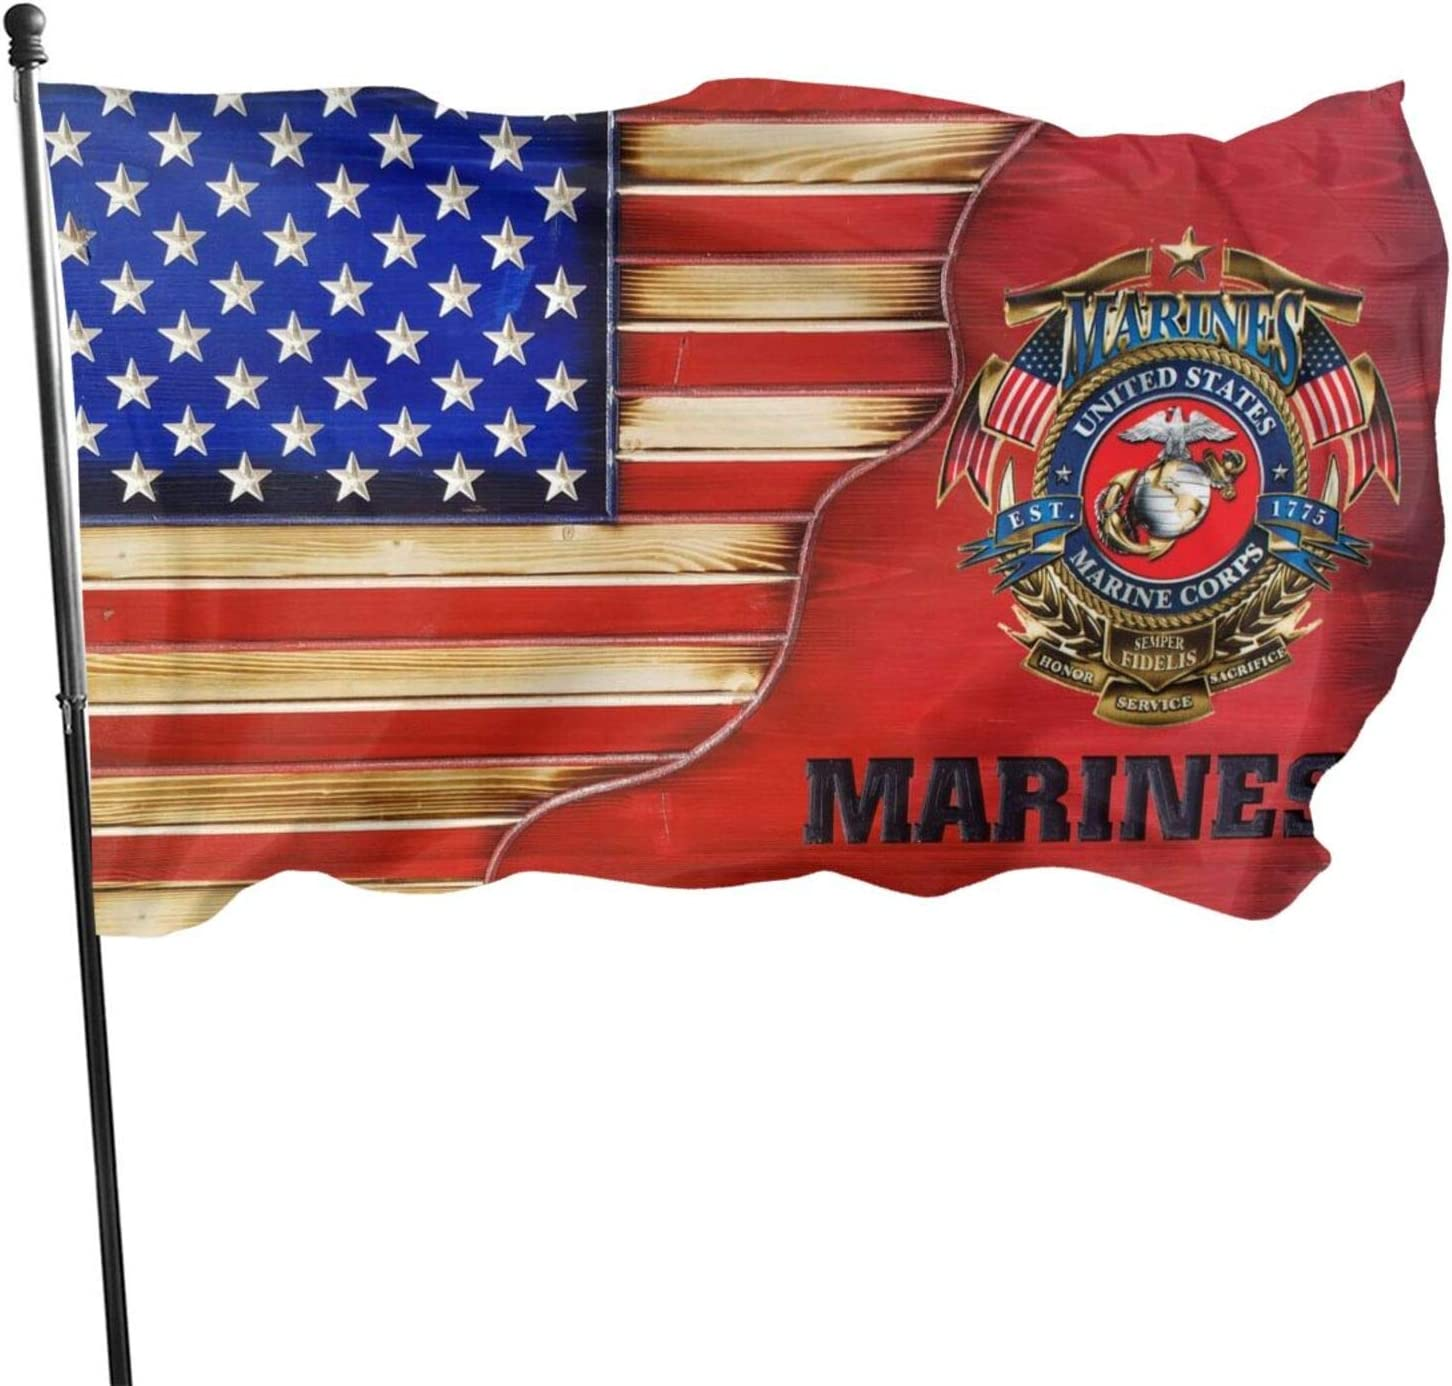 Us Marines Coprs Flag 3x5 Ft - Uv Resistant Single Side And Translucent - Us Marine Veteran Flags With Brass Grommets Military Flags Outdoor Decor Usmc Sign